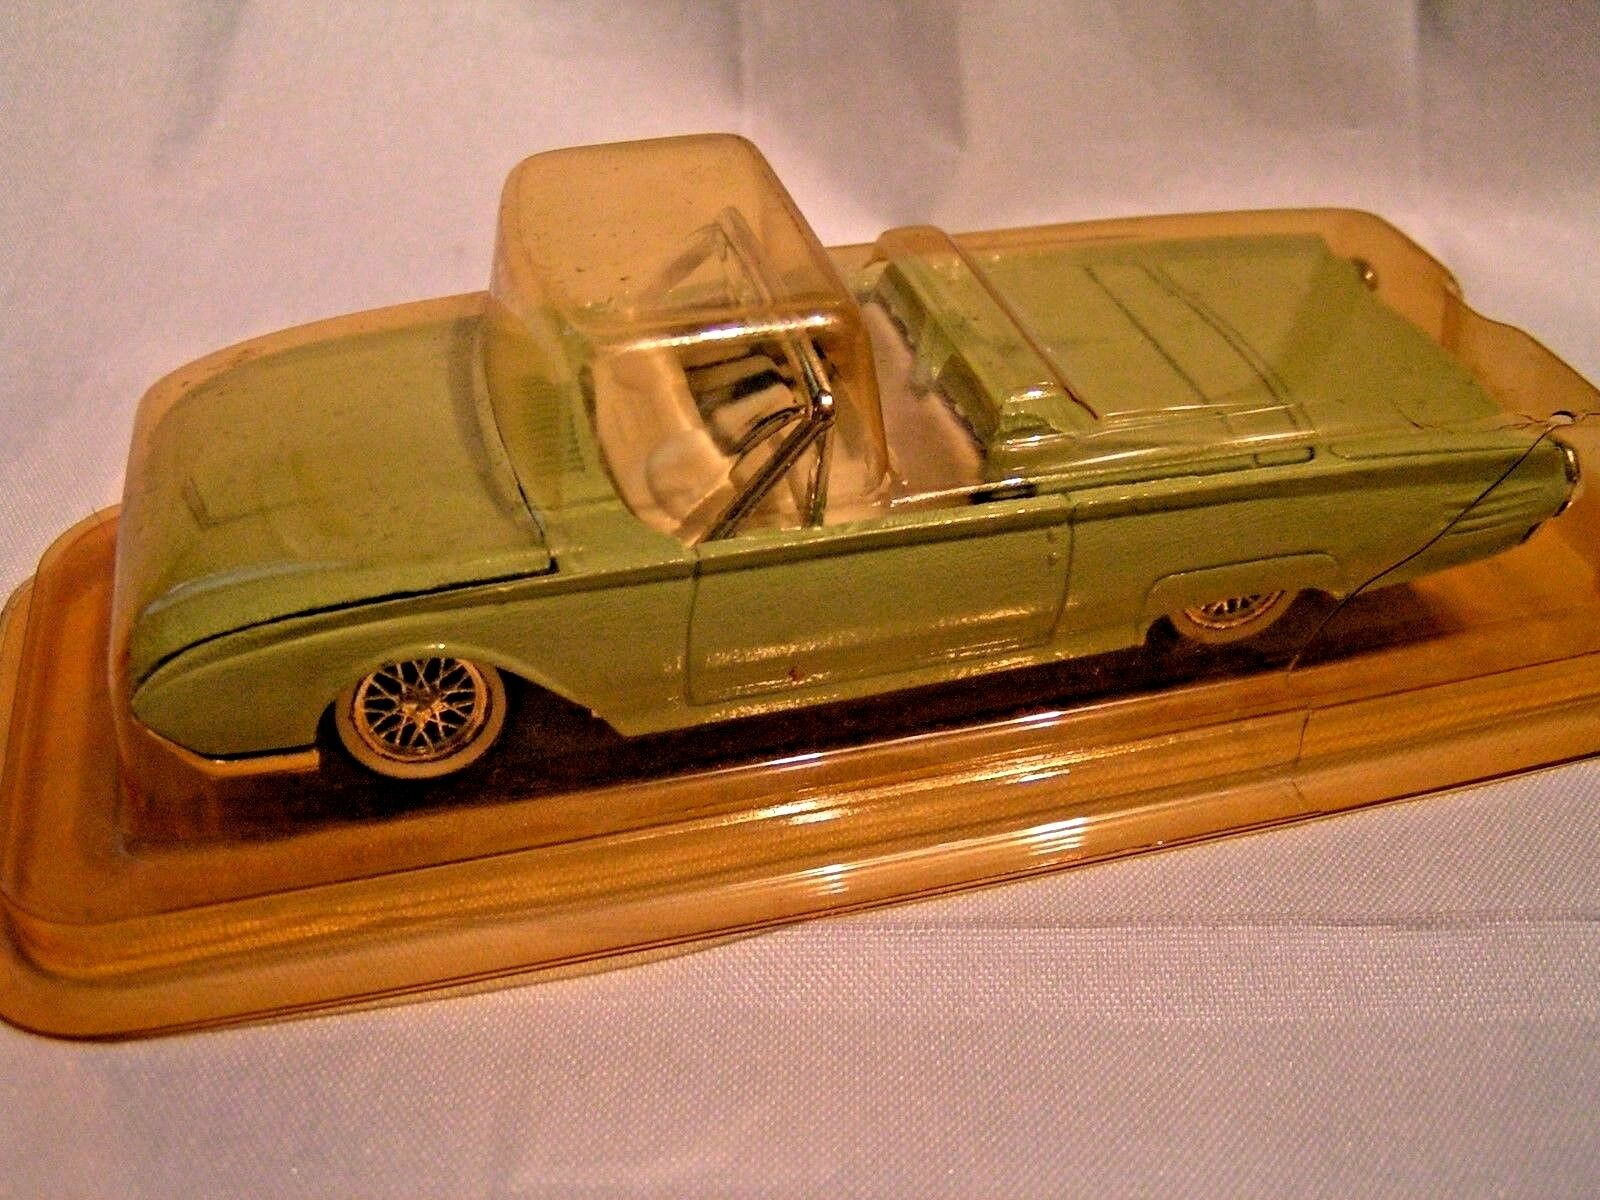 SOLIDO 1 43 43 43 - LOT A DE 4 AMERICAINES = FORD + CHEVROLET + FORD + STUDEBAKER bb0aaf